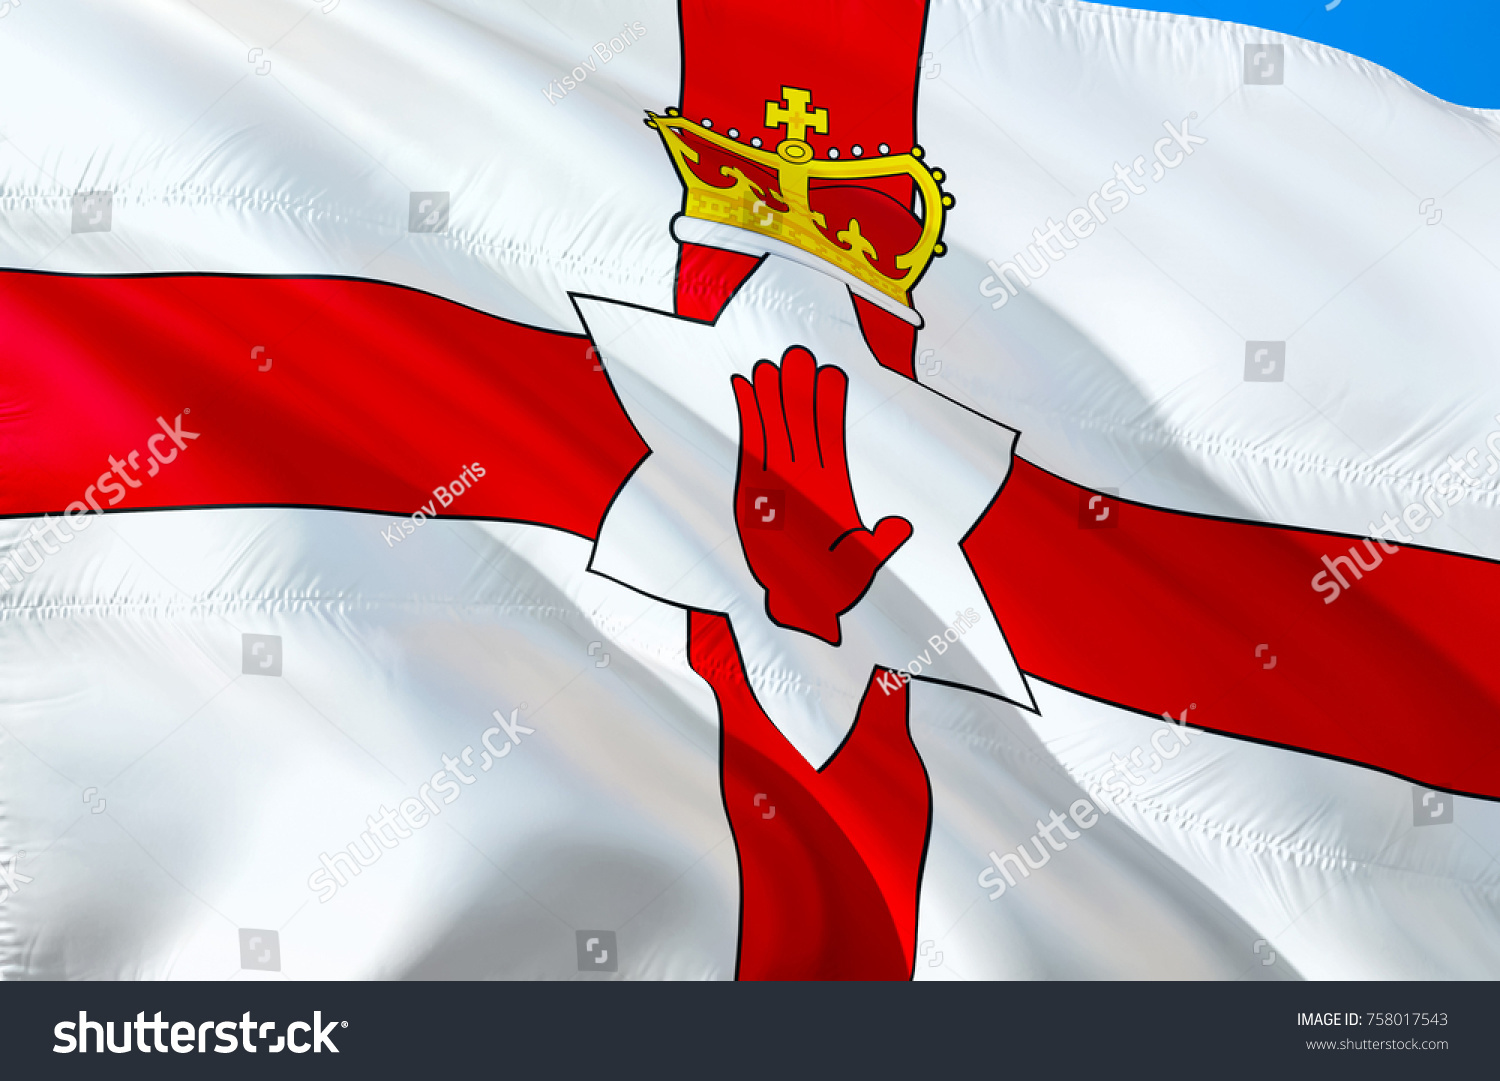 Royalty Stock Illustration of Northern Ireland Flag 3 D 1500x1081